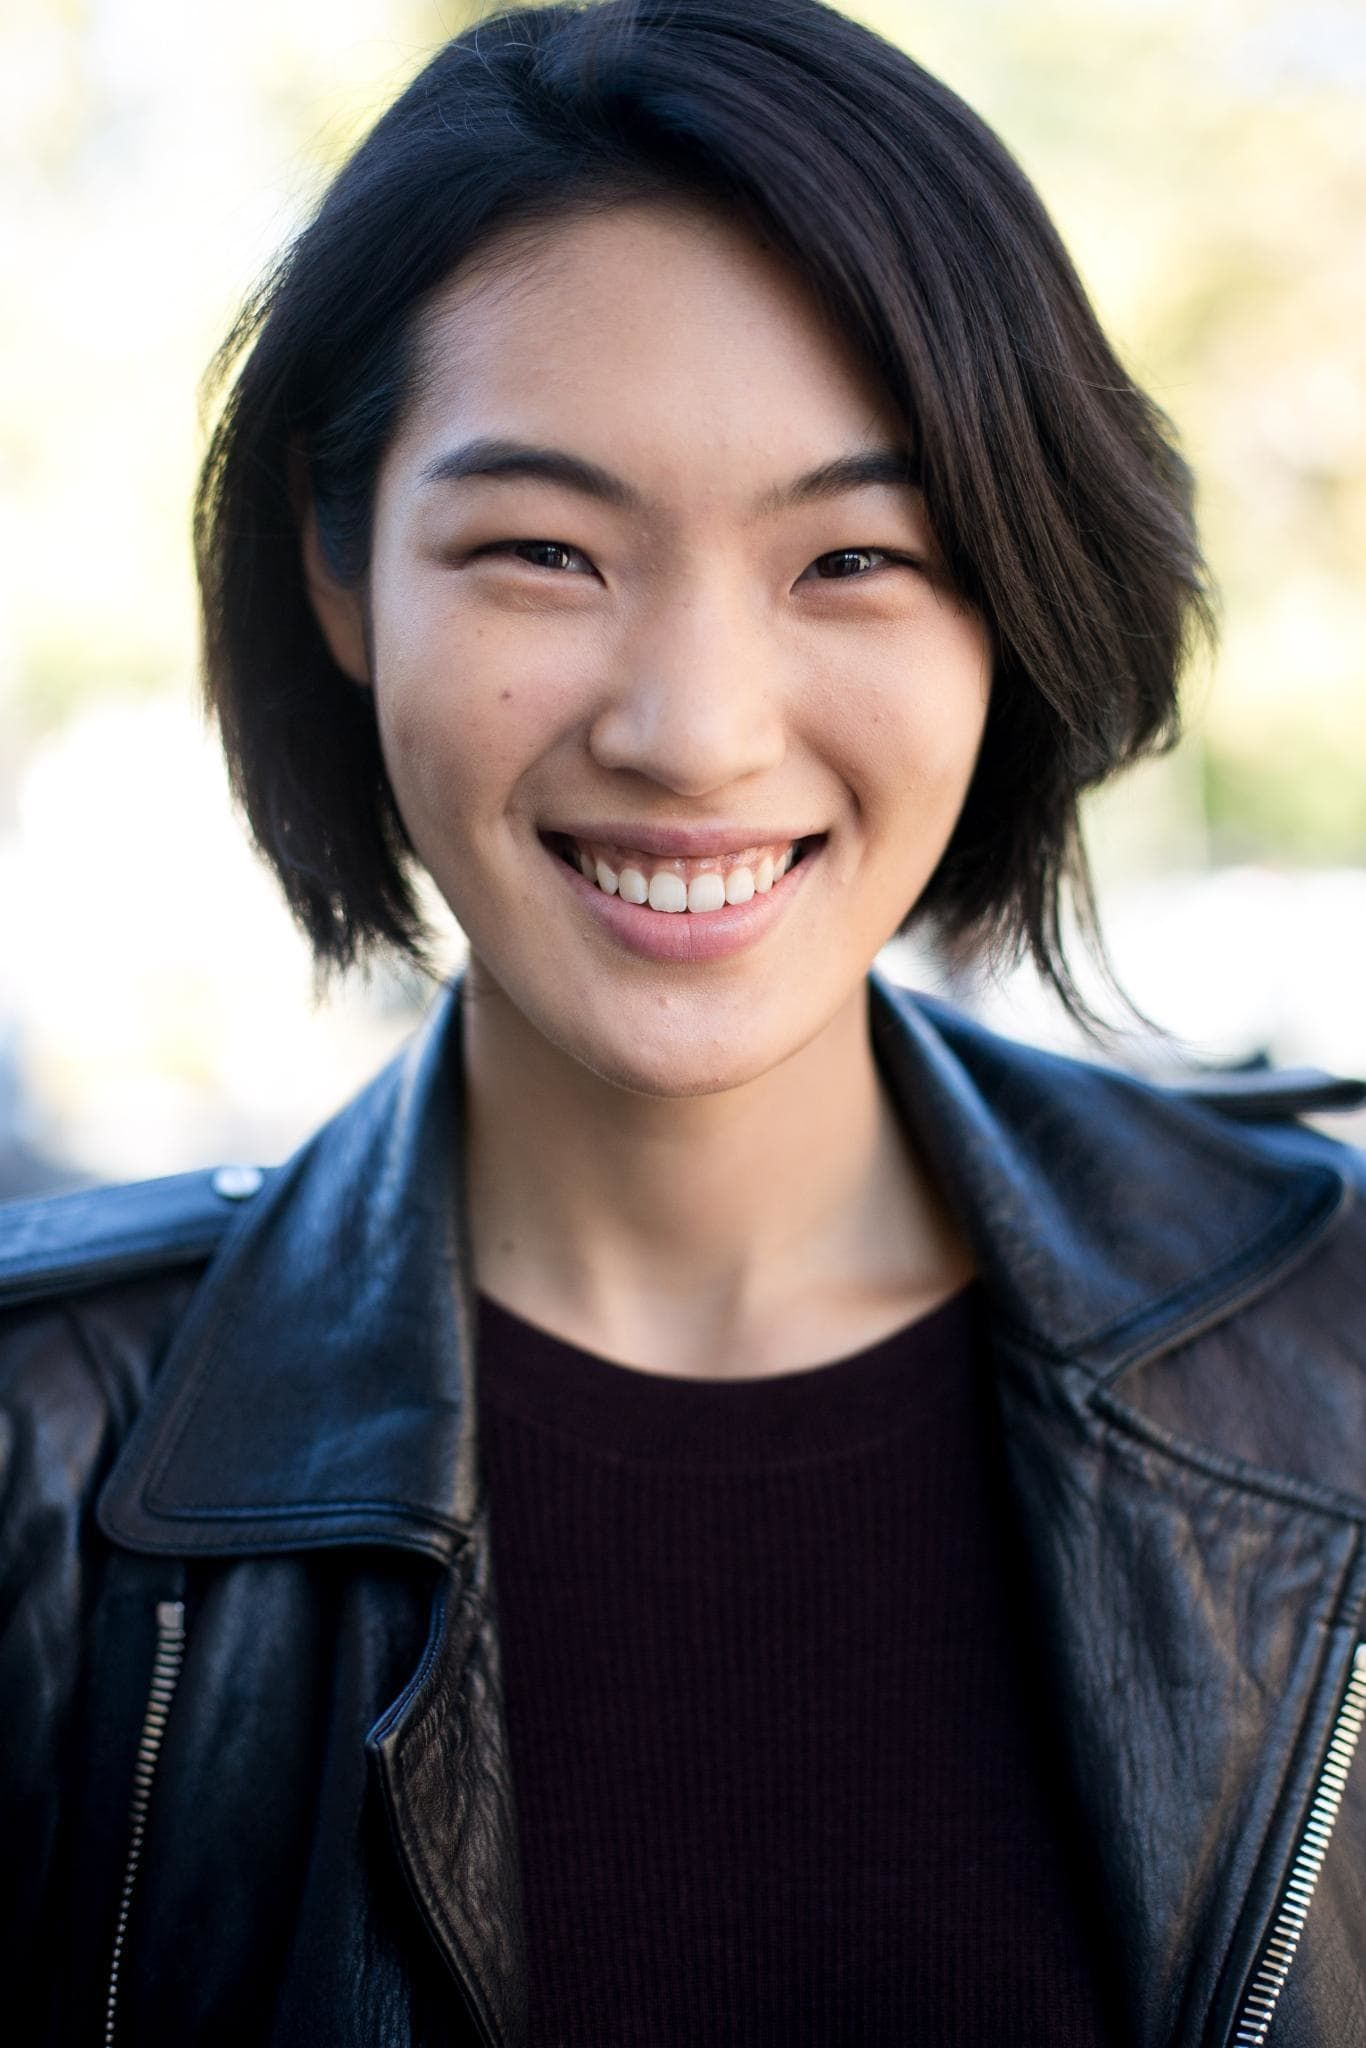 image result for asian girl short haircut | projects